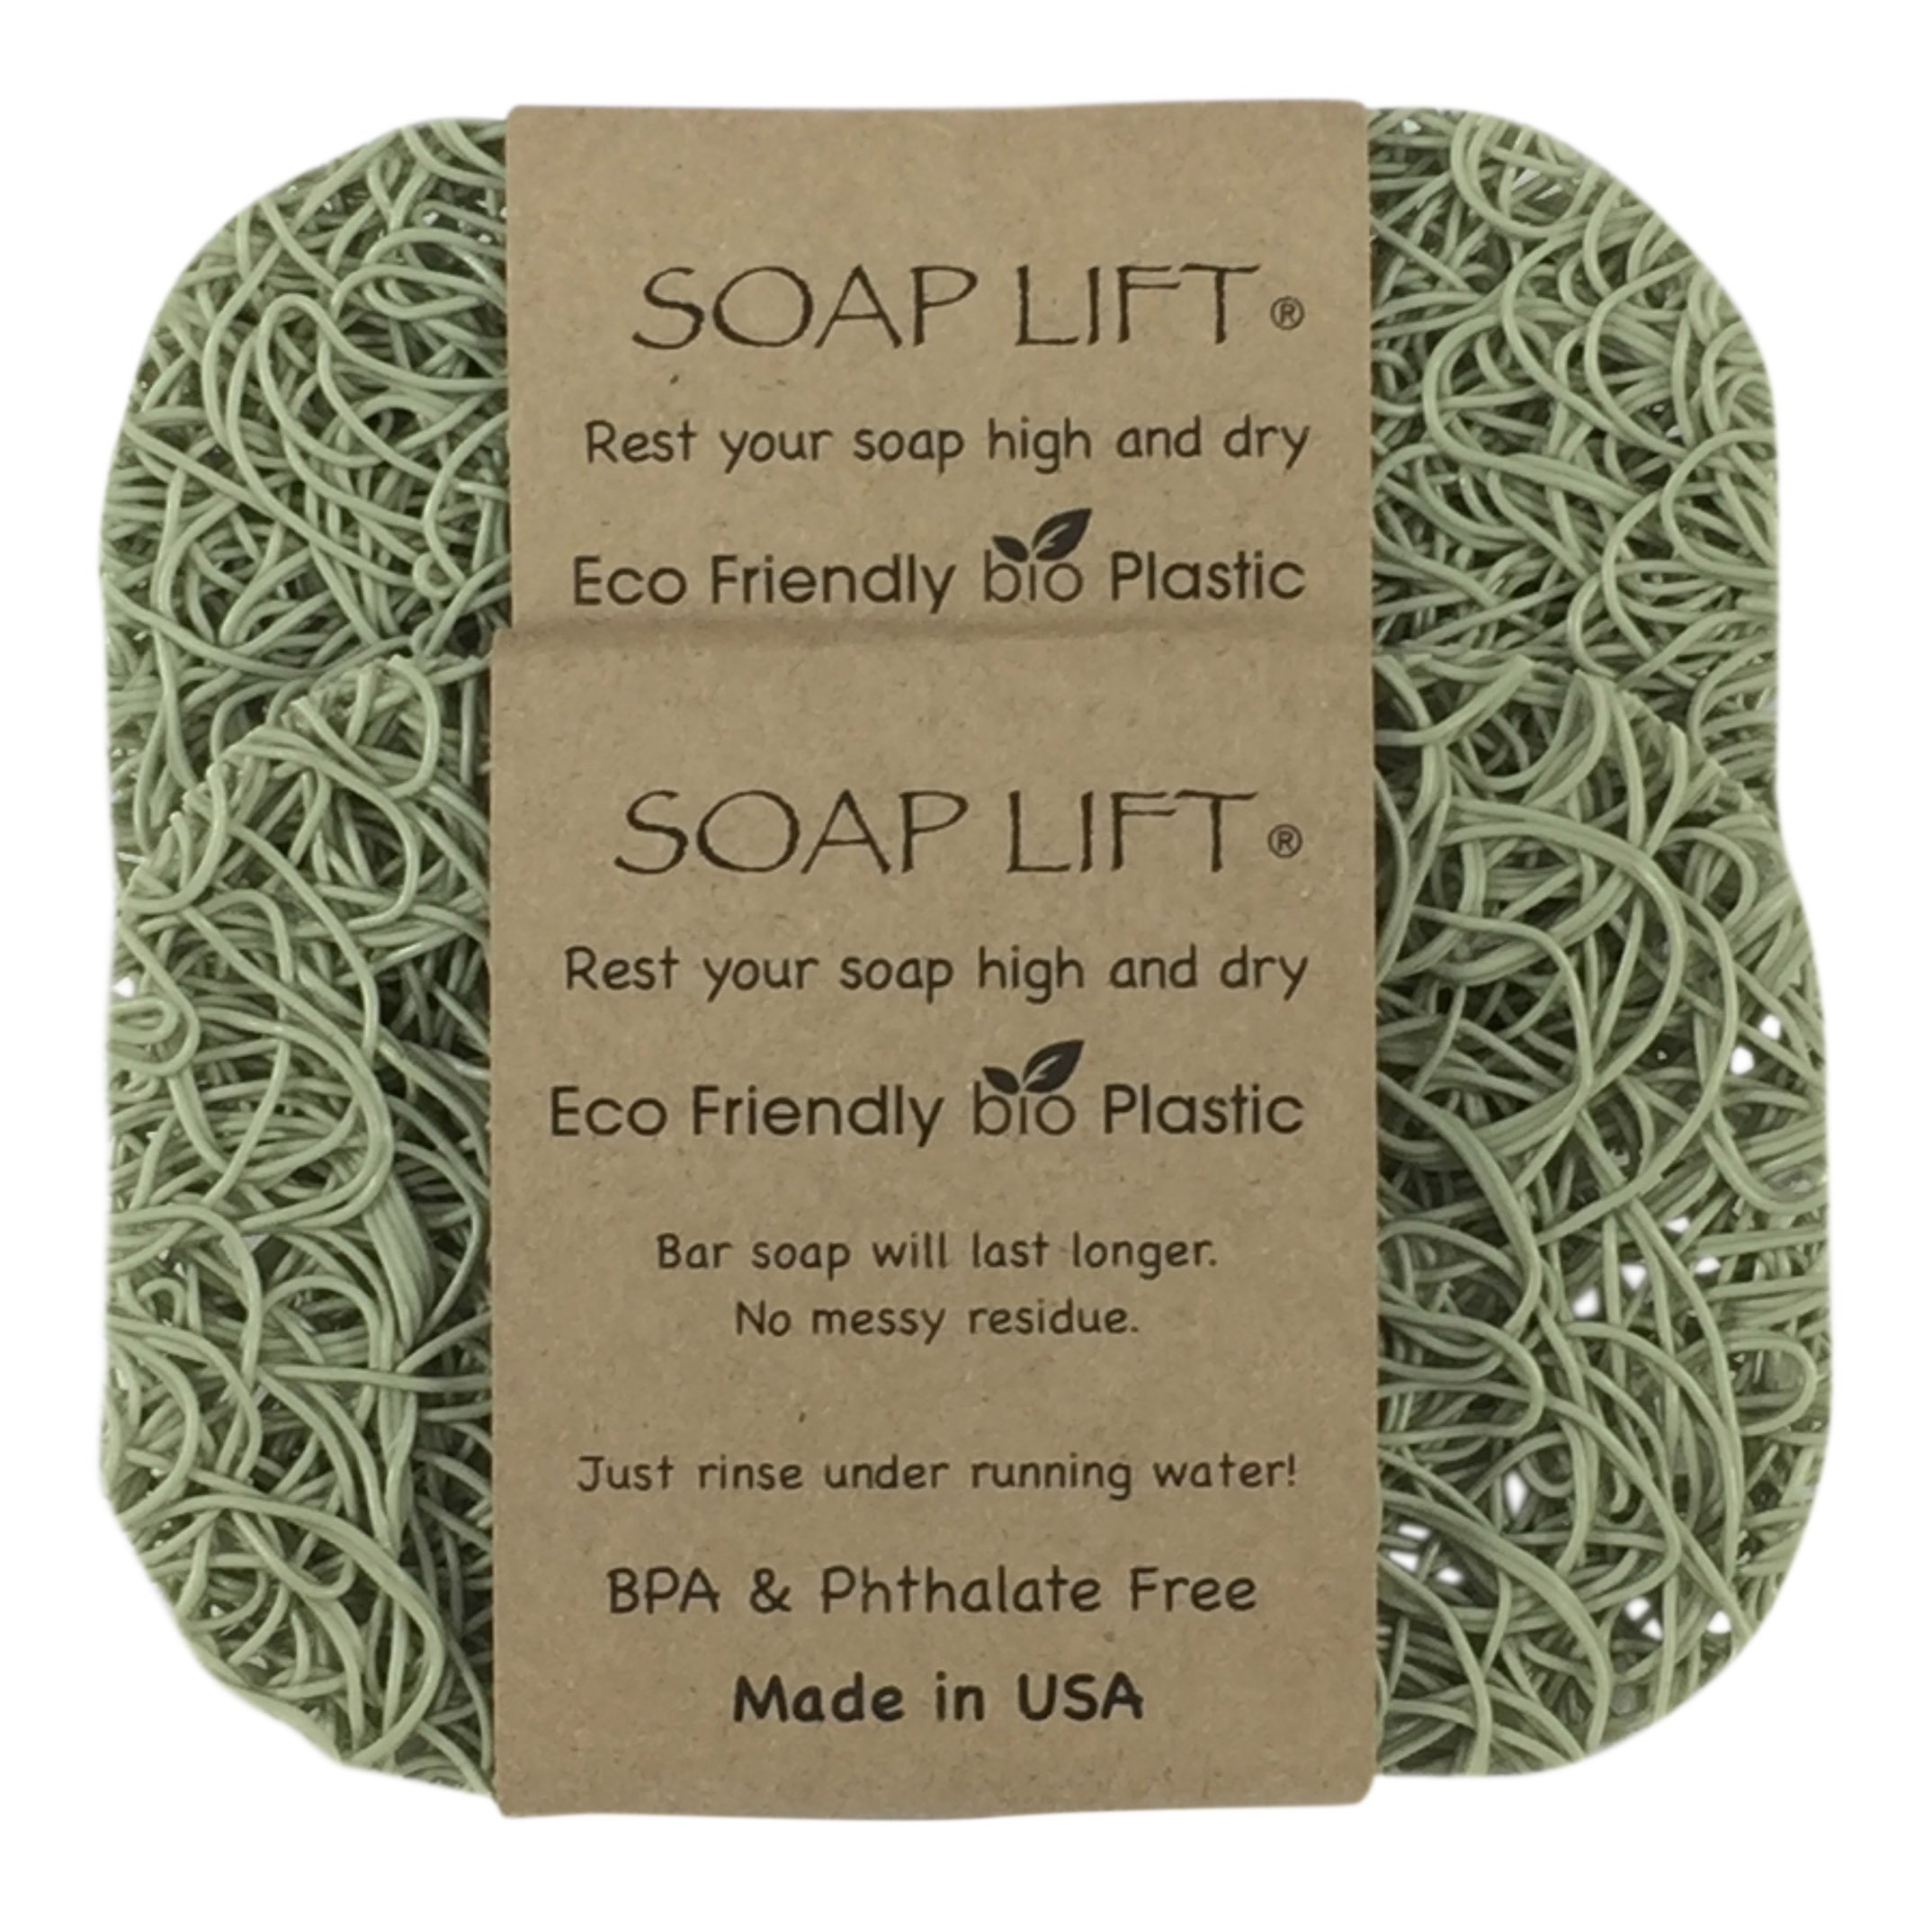 Soap Lift Sage Soap Dish, Two Pack by SoapLift